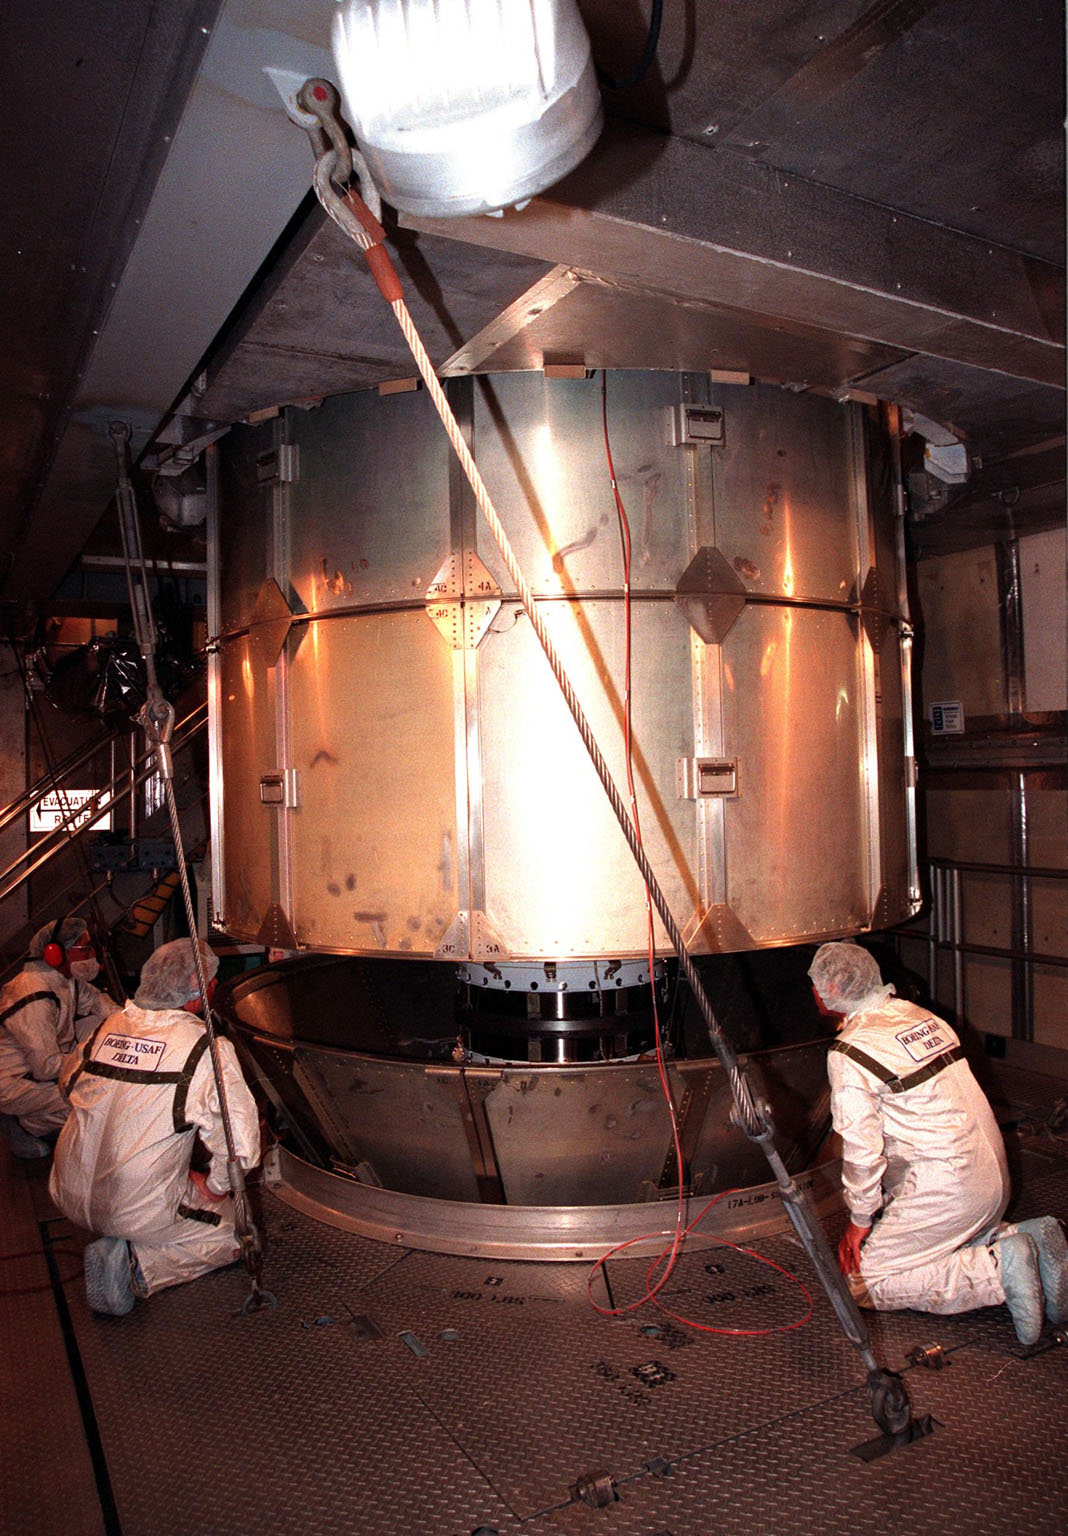 At Launch Pad 17-A, Cape Canaveral Air Station, workers watch as the protective canister is lifted from the Stardust spacecraft. Preparations continue for liftoff of the Boeing Delta II rocket carrying Stardust on Feb. 6. Stardust is destined for a close encounter with the comet Wild 2 in January 2004. Using a silicon-based substance called aerogel, Stardust will capture comet particles flying off the nucleus of the comet. The spacecraft also will bring back samples of interstellar dust. These materials consist of ancient pre-solar interstellar grains and other remnants left over from the formation of the solar system. Scientists expect their analysis to provide important insights into the evolution of the sun and planets and possibly into the origin of life itself. The collected samples will return to Earth in a sample return capsule to be jettisoned as Stardust swings by Earth in January 2006